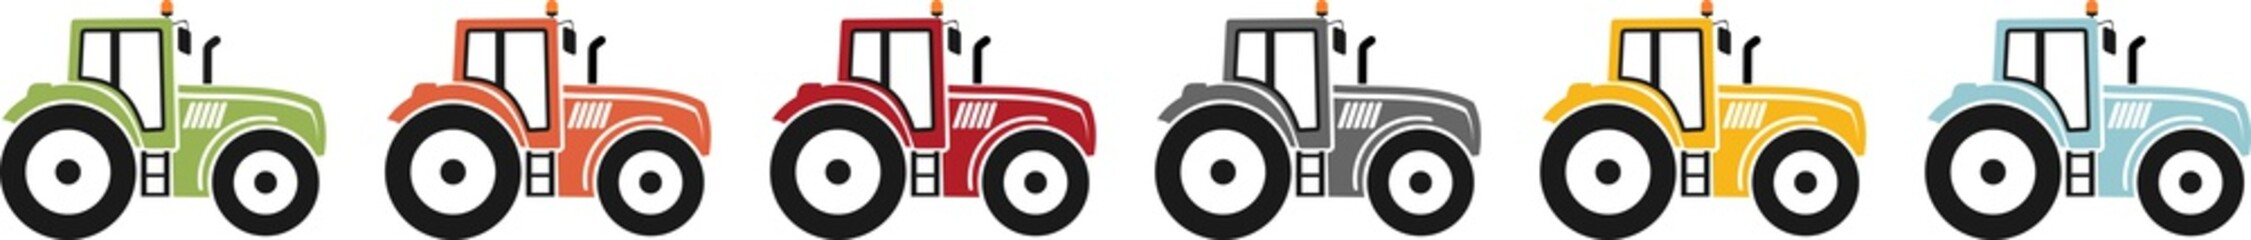 Coloured icon of a tractor for agriculture